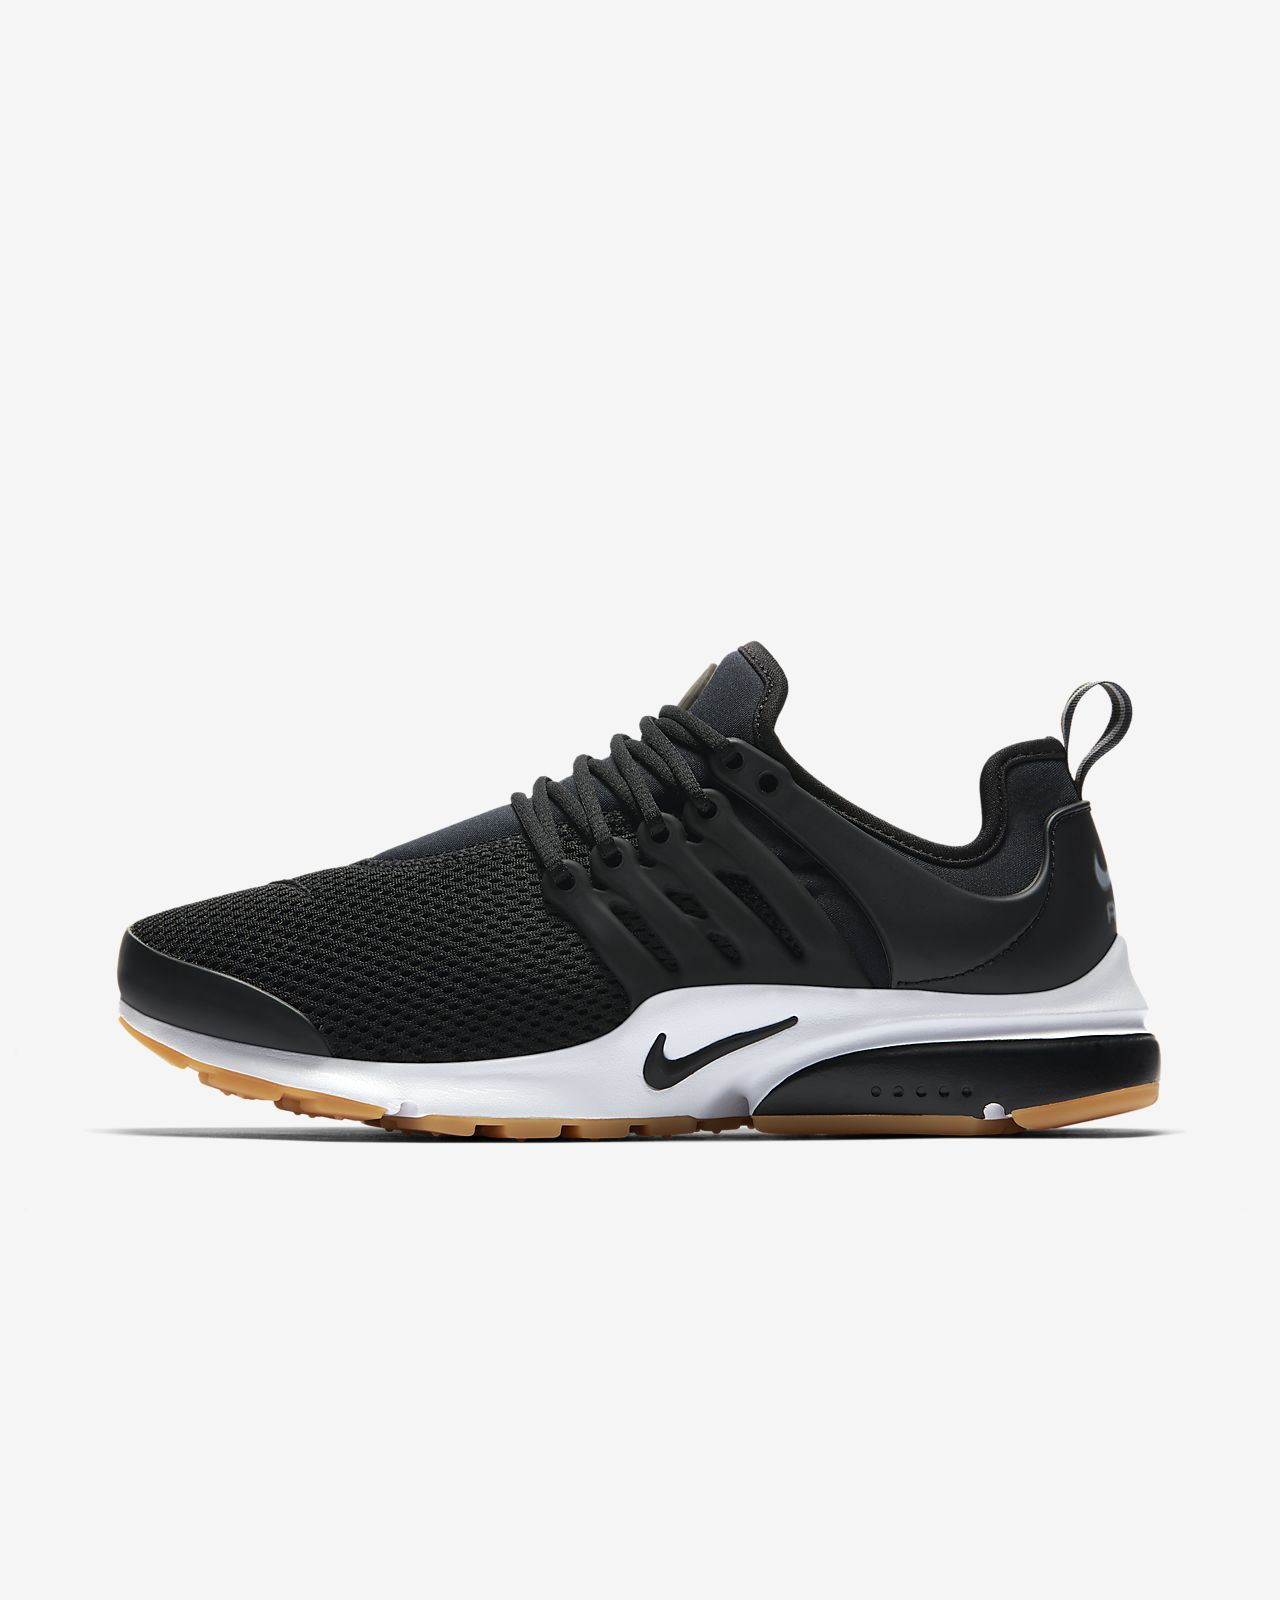 watch 82733 99df7 ... Nike Air Presto Women s Shoe